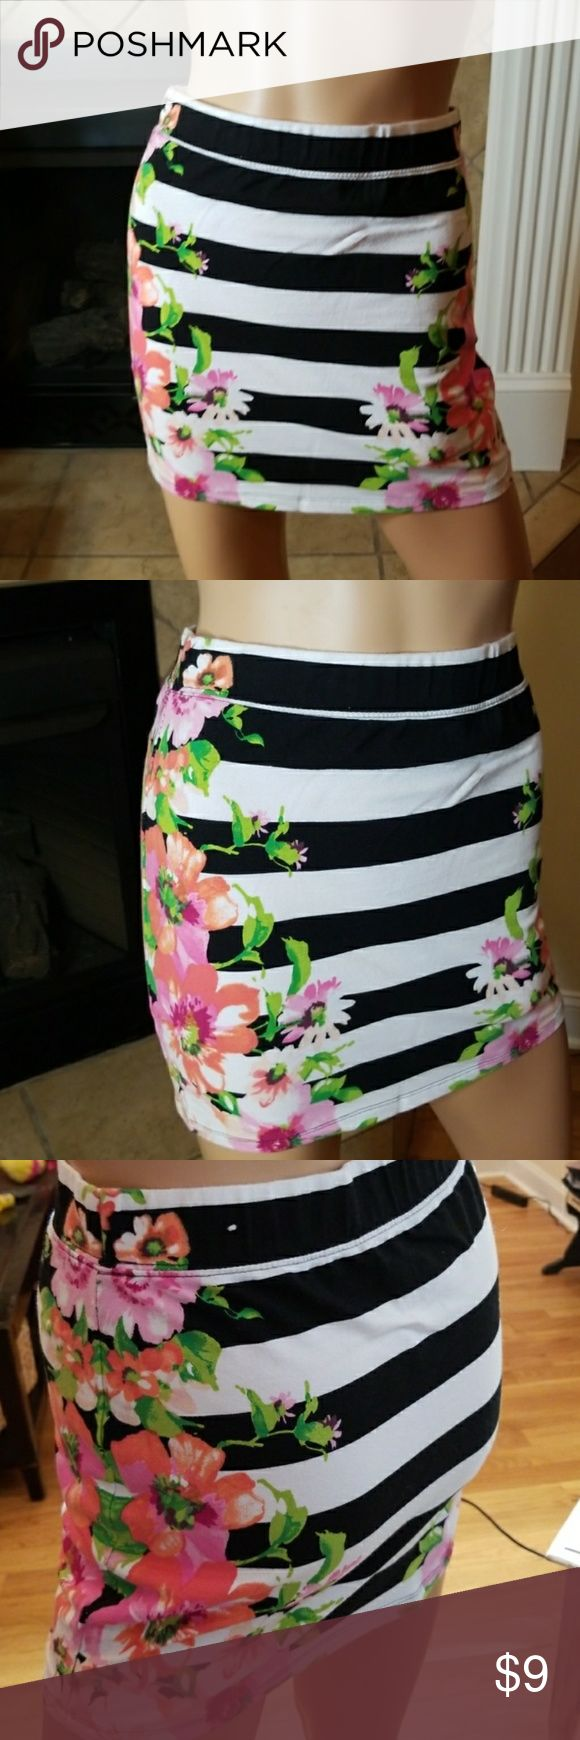 🎈5 for $15🎈AERO FLORAL STRIPE MINI SKIRT 🎈5 for $15🎈- Bundle any 5 items marked 5 for $10 and offer $15!  Also CHECK OUT my  🦄5 for $15🦄, 💋3 for $24💋 🦄3 for $50🦄 &♥️10 for $10♥️ SALE!  Why SHOP MY Closet? 💋Smoke/ Pet Free 💋OVER 1000 🌟🌟🌟🌟🌟RATINGS 💋POSH AMBASSADOR &TOP 10% Seller  💋TOP RATED 💋 FAST SHIPPER   💋BUNDLES DISCOUNT 💋EARN VIP DOLLARS W/ EVERY PURCHASE ❤HAPPY POSHING!!! 💕 Aeropostale Skirts Mini